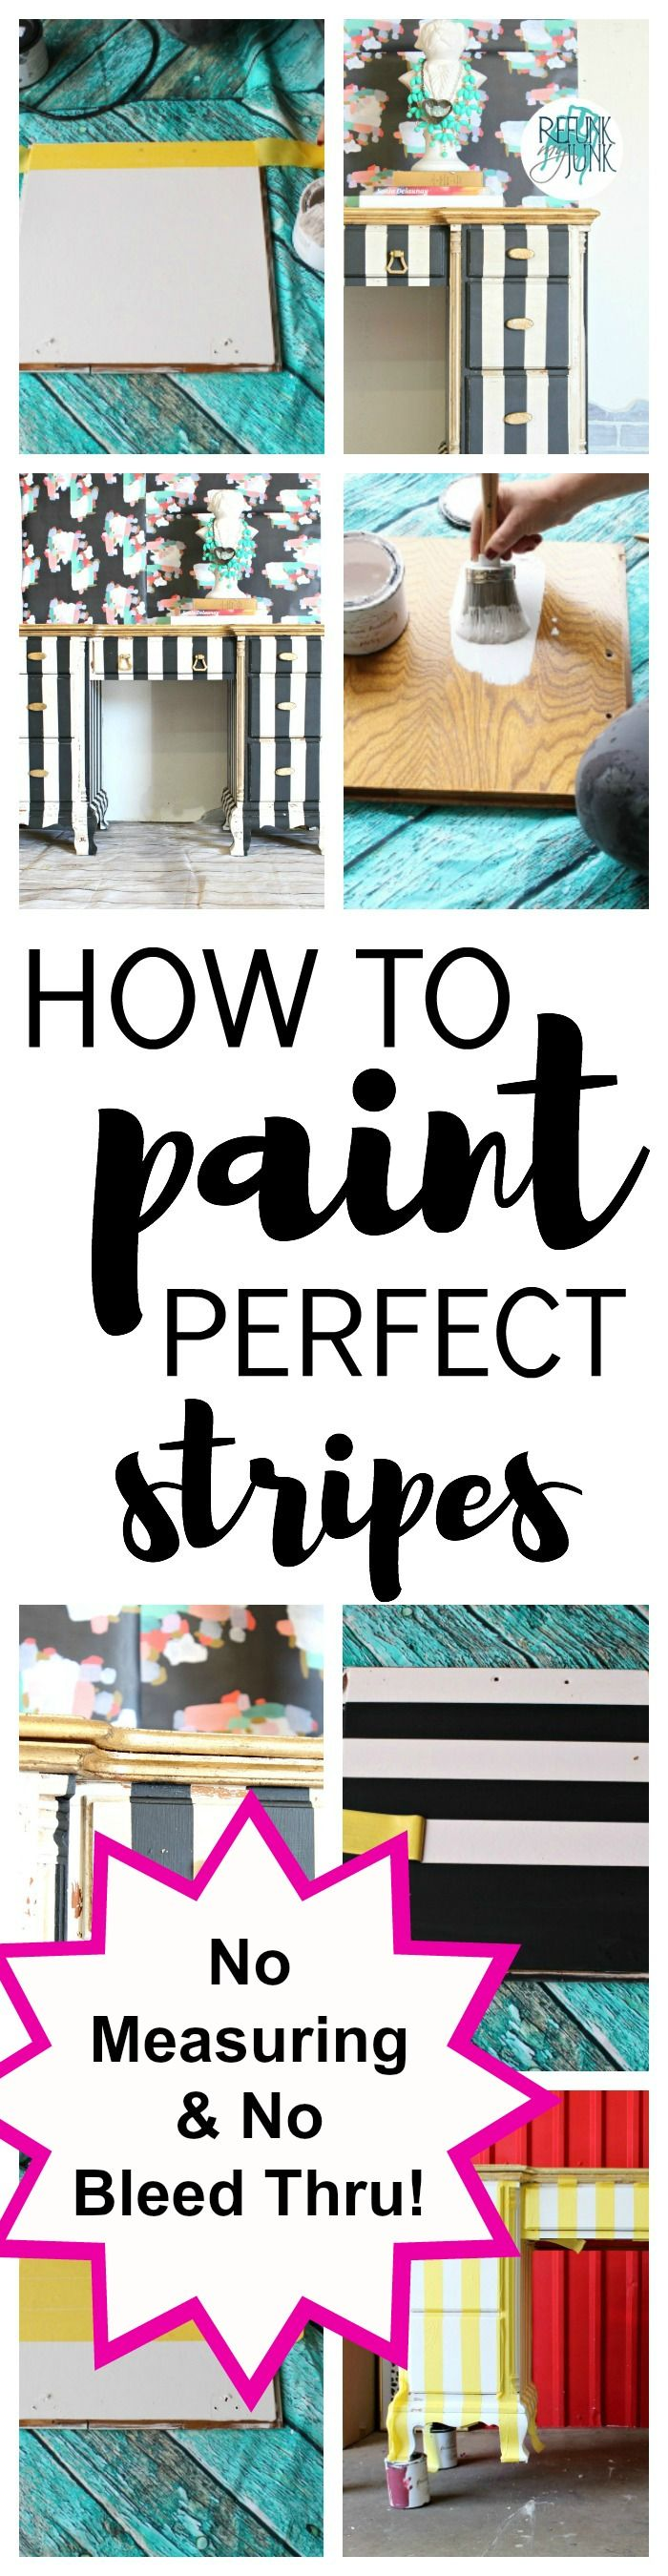 "How to paint the perfect stripes - One reader says ""I can't believe there is NO measuring and No bleed thru! Crazy!"""